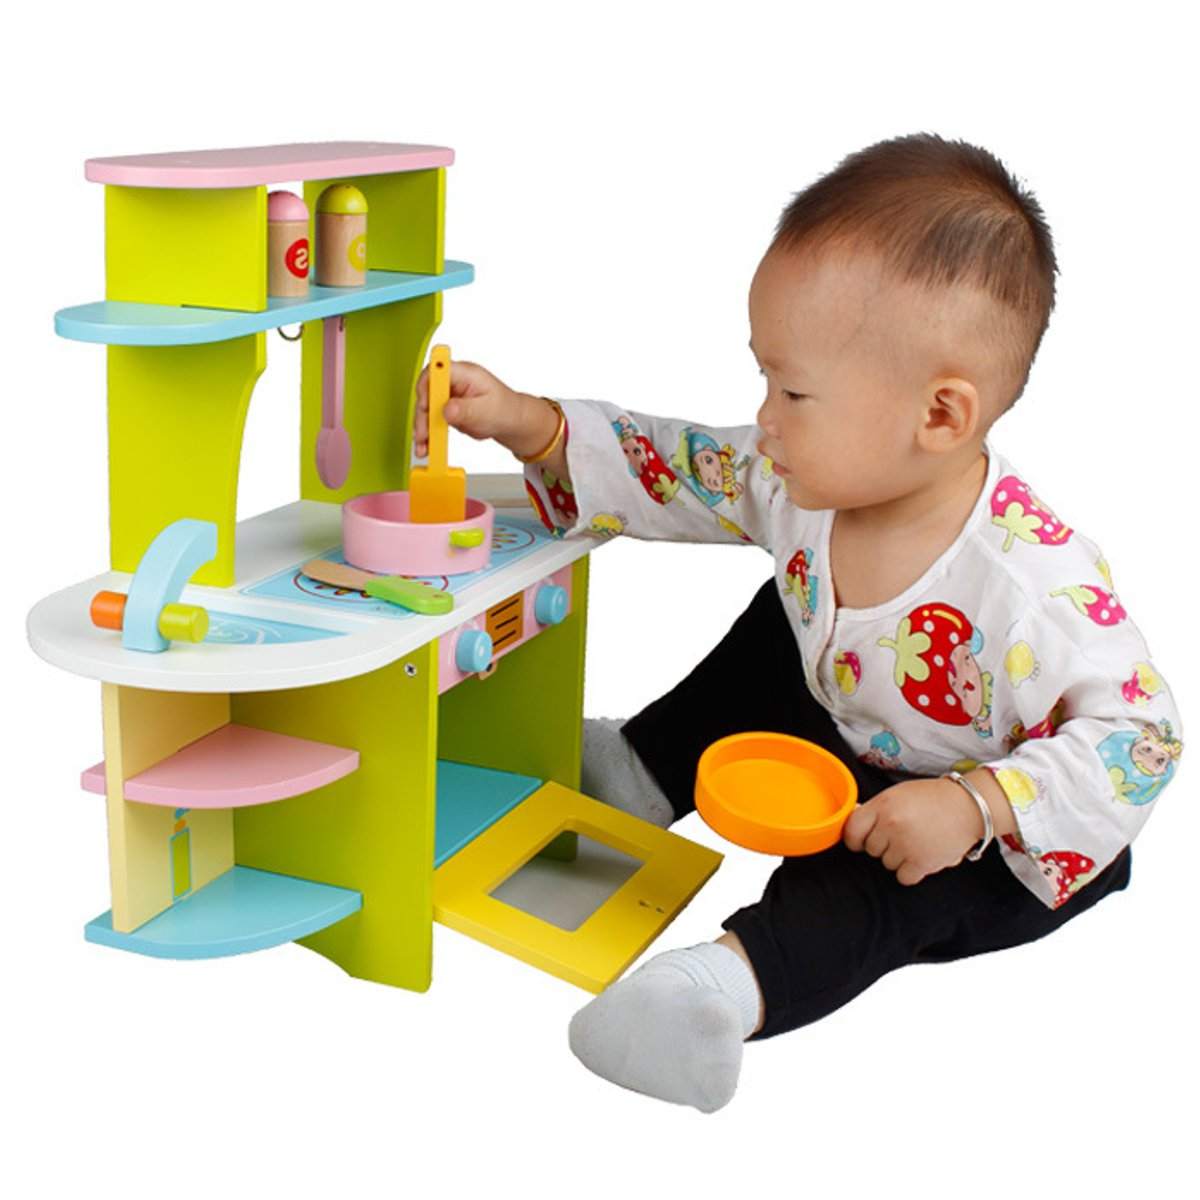 Baby Wooden Miniature Kitchen Pretend Play Food Children Kids Toys for Girls Boys Simulation Cooking Cookware Kitchen Toys Set